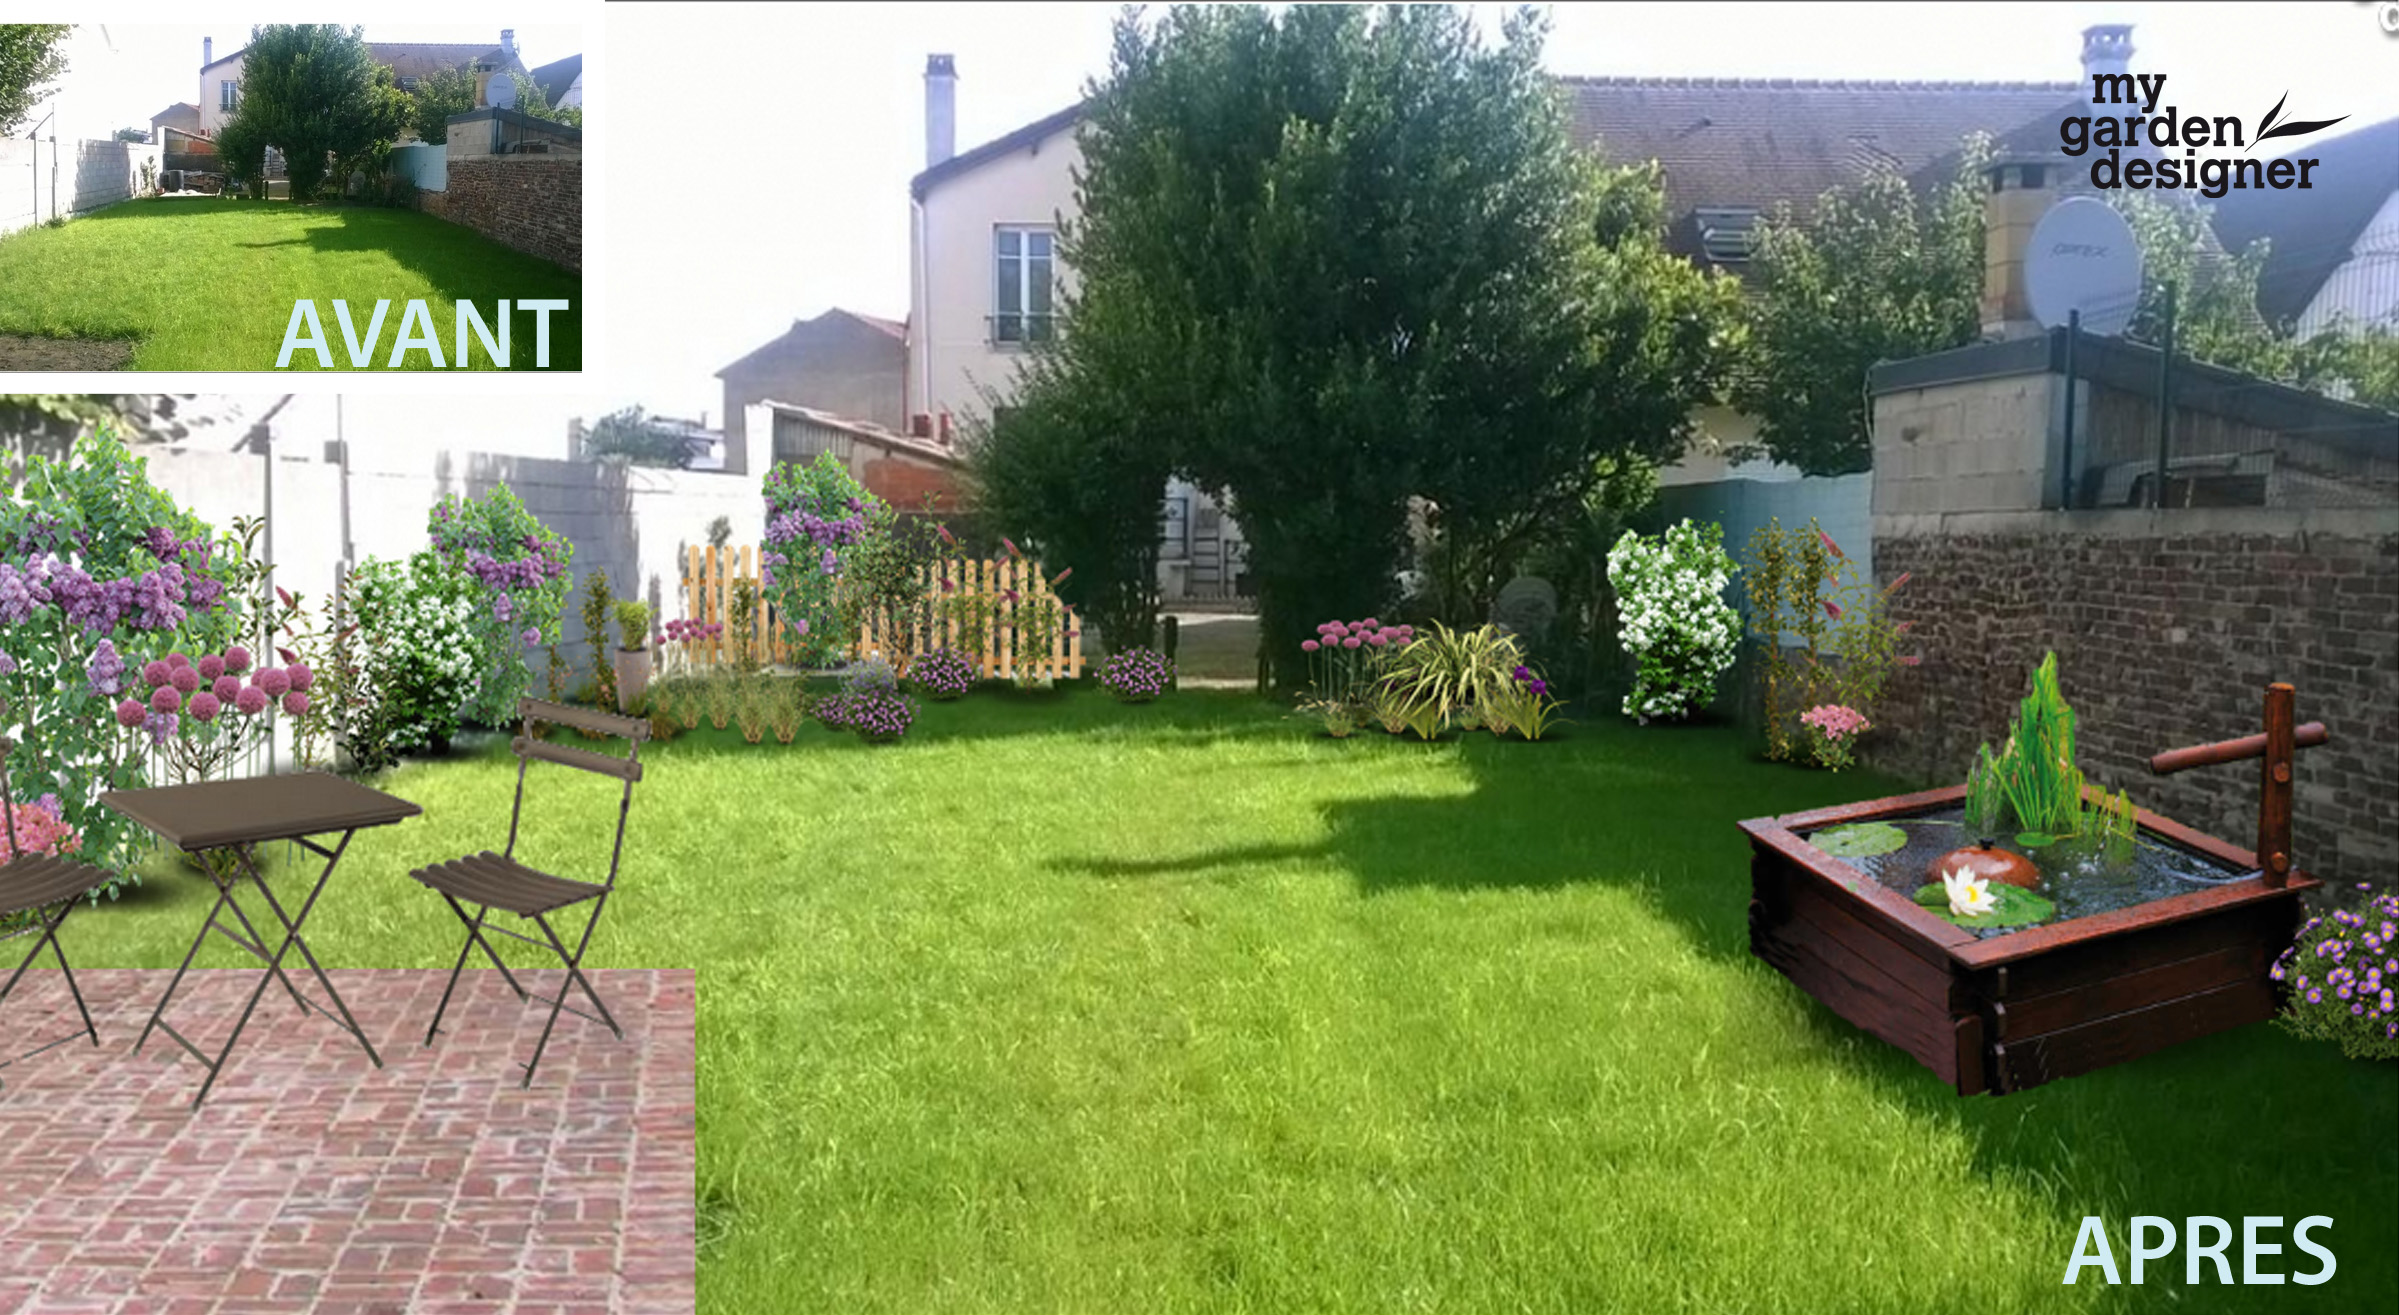 Am nager un jardin carr en ile de france monjardin for Amenager un jardin